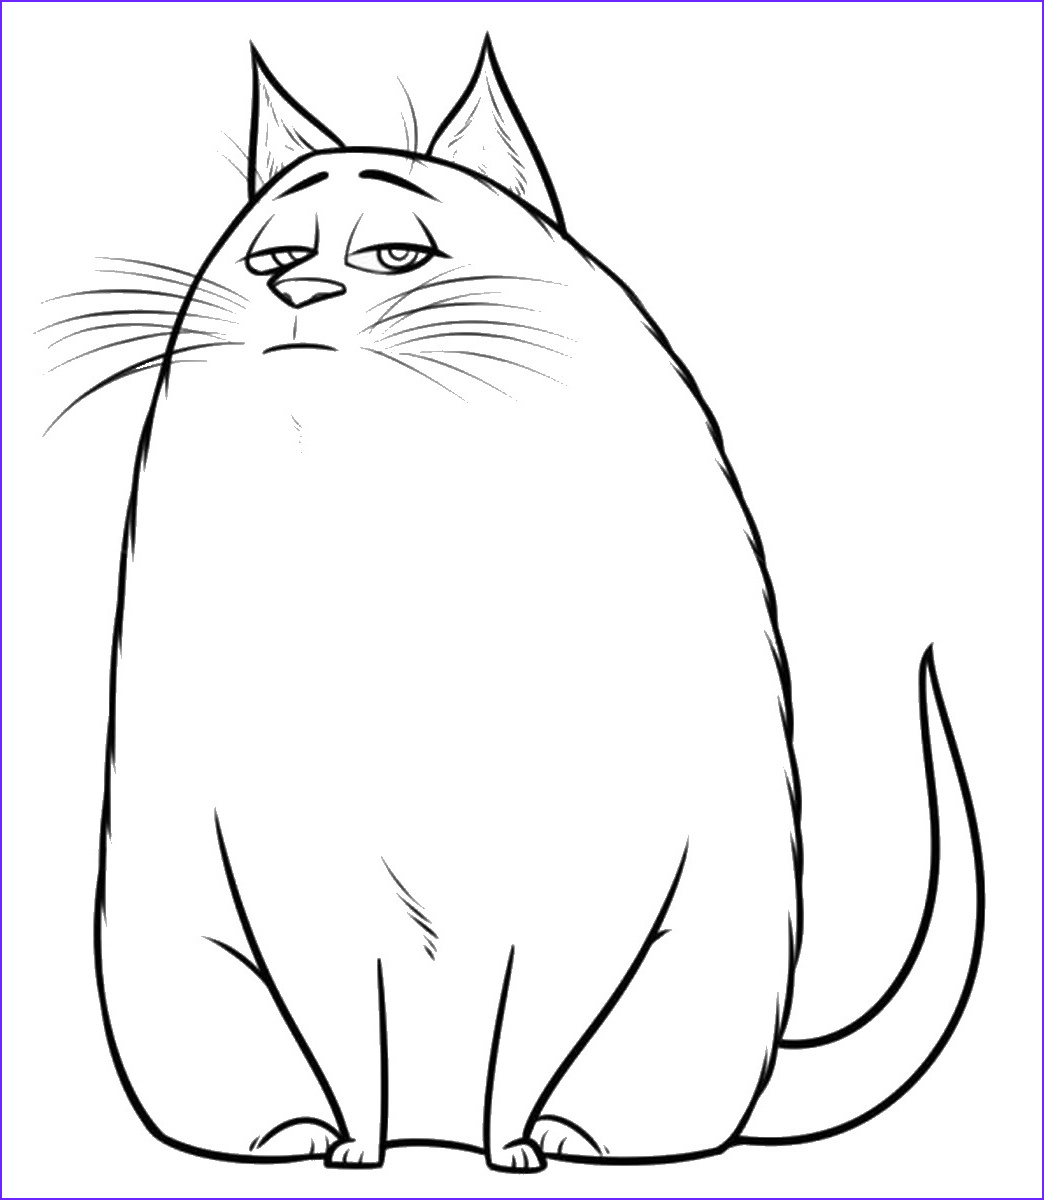 The Secret Life Of Pets Coloring Page Beautiful Image The Secret Life Of Pets Coloring Pages